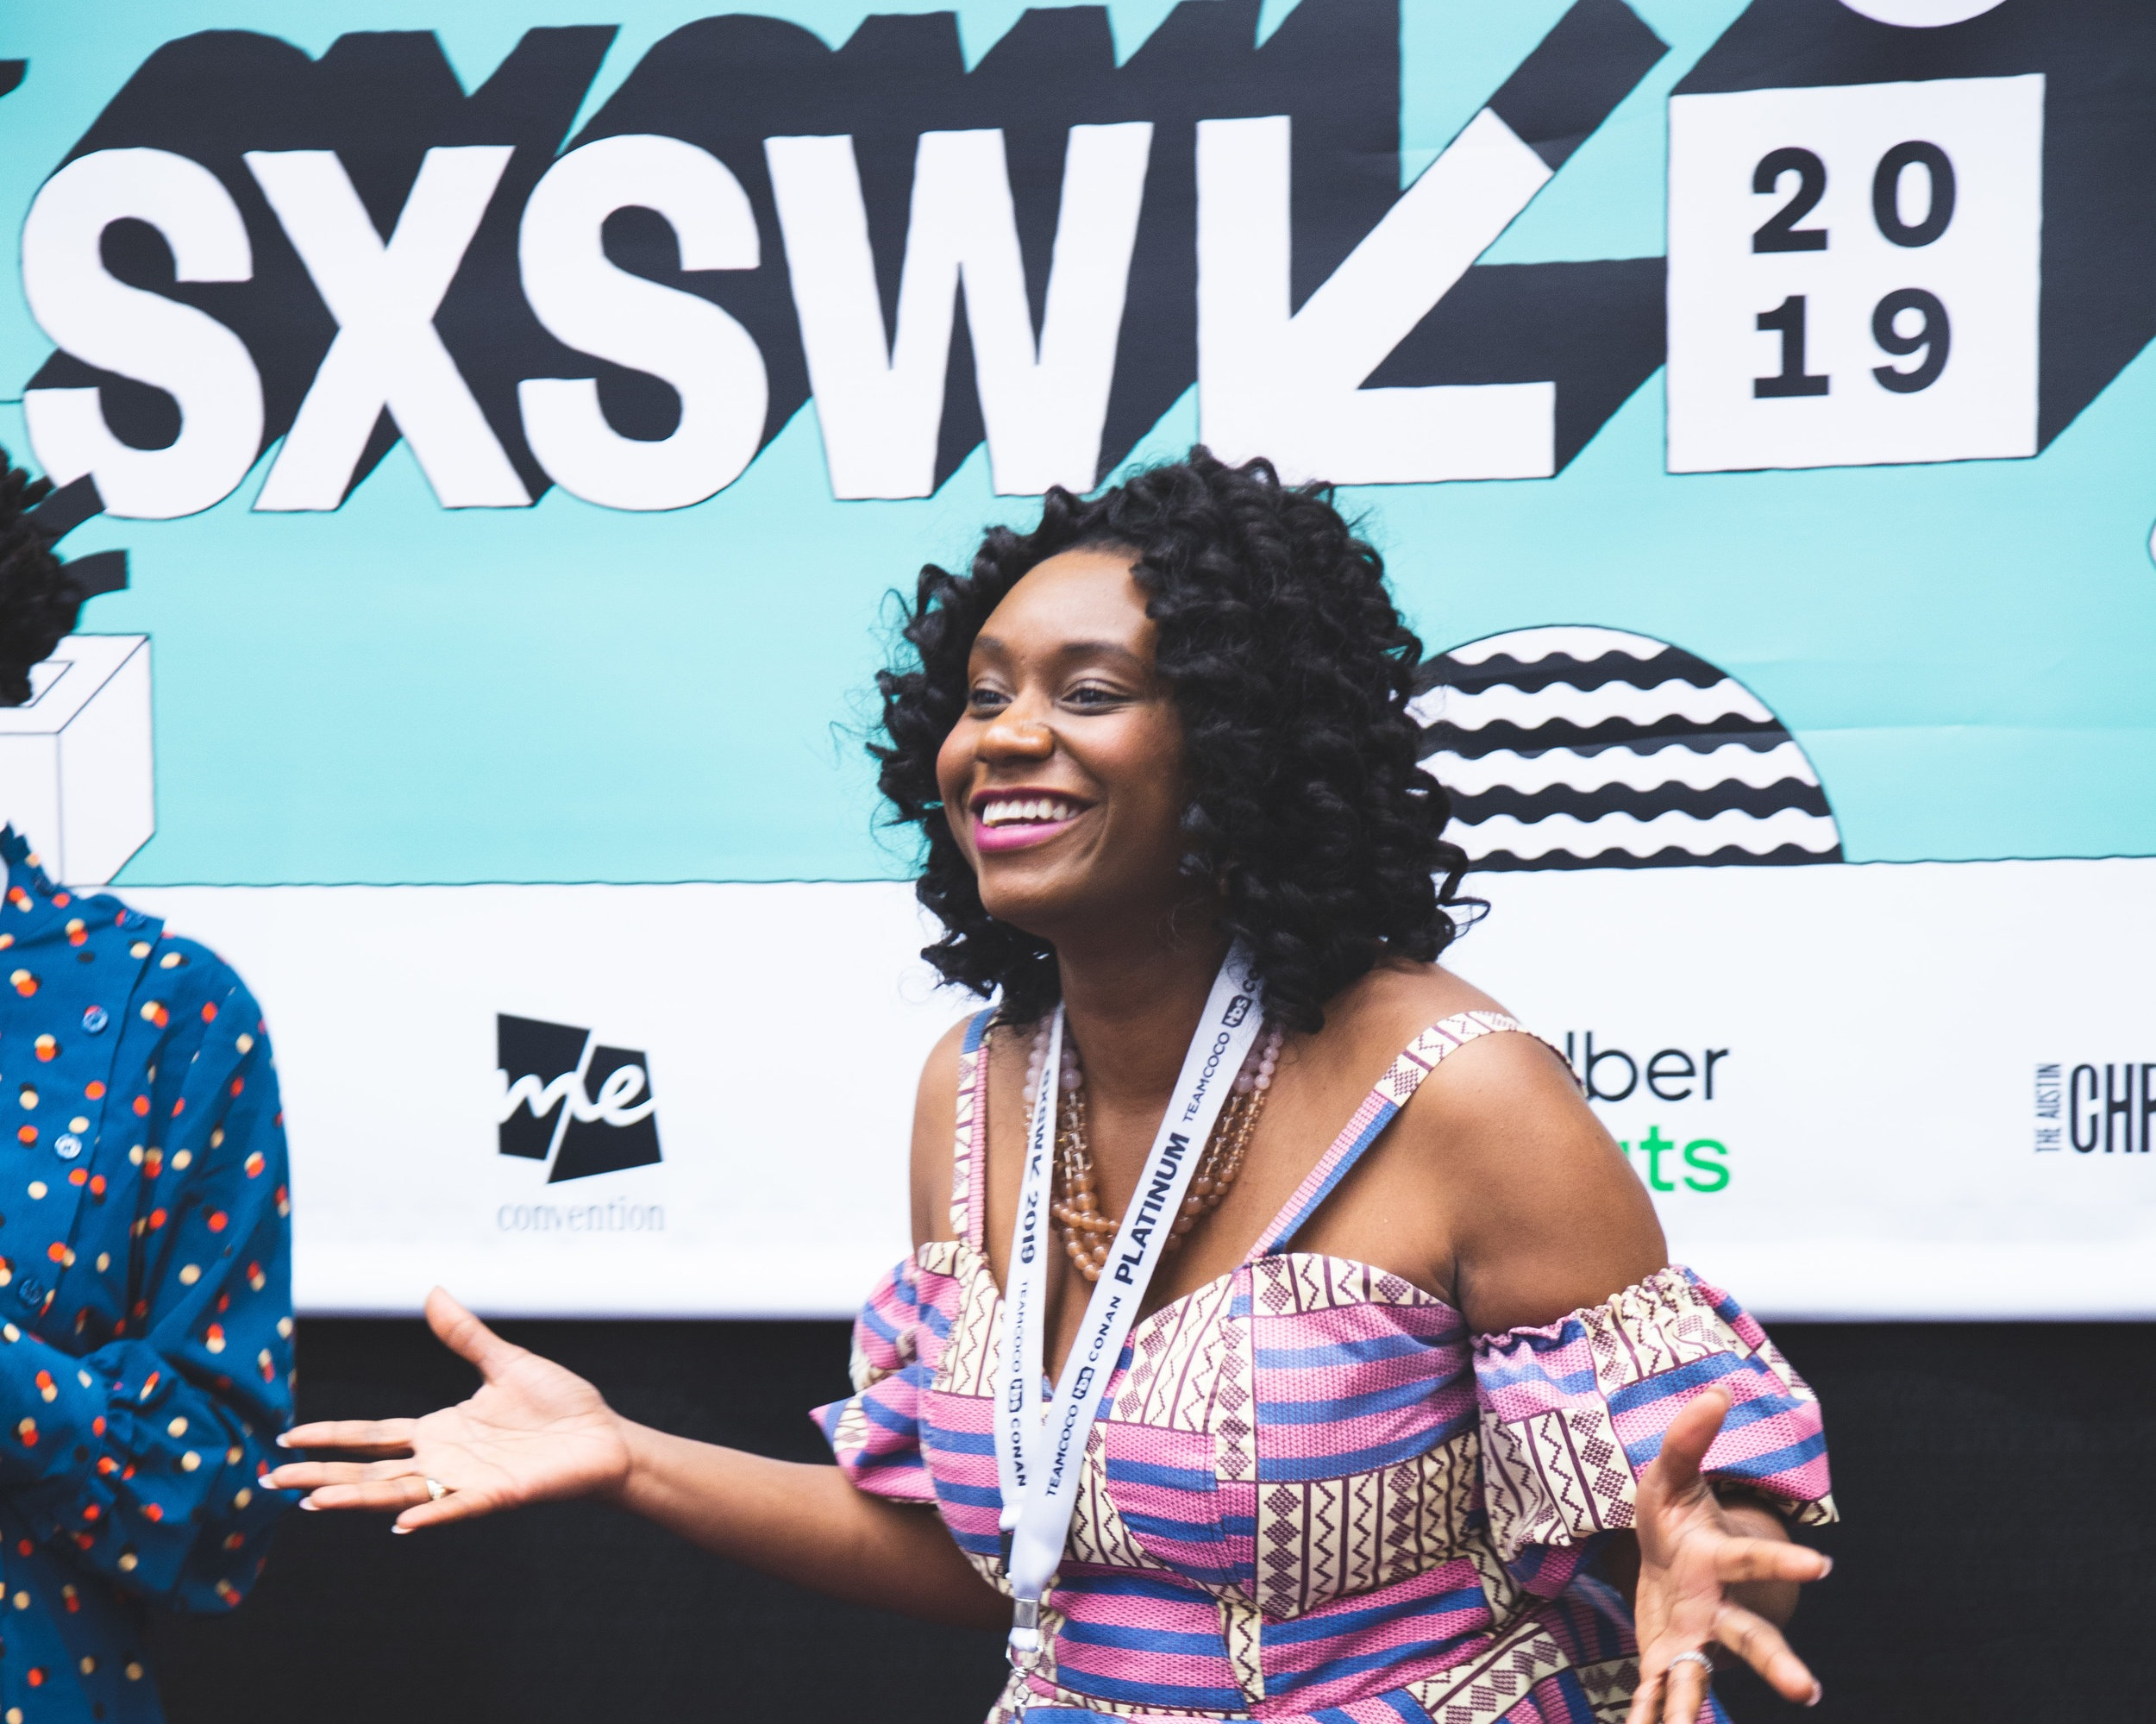 Speaking at SXSW 2019 in Austin Texas.